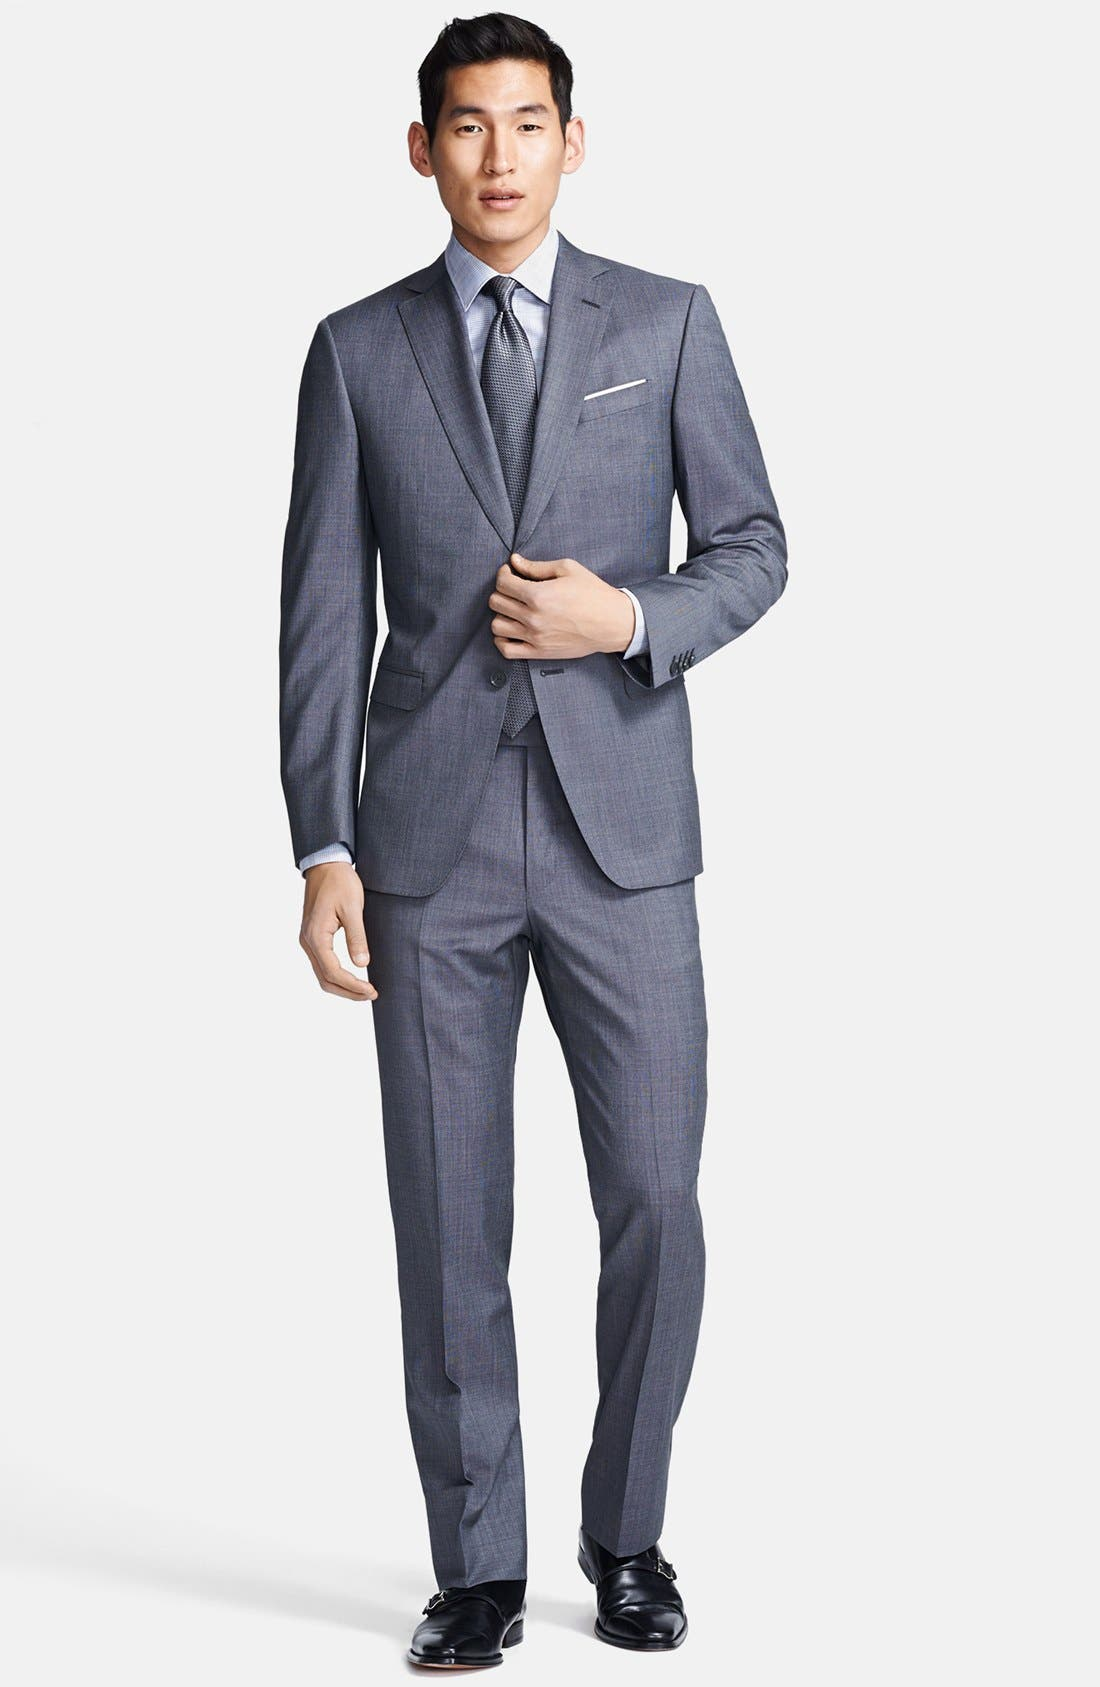 Alternate Image 1 Selected - Z Zegna Trim Fit Grey Textured Wool Suit